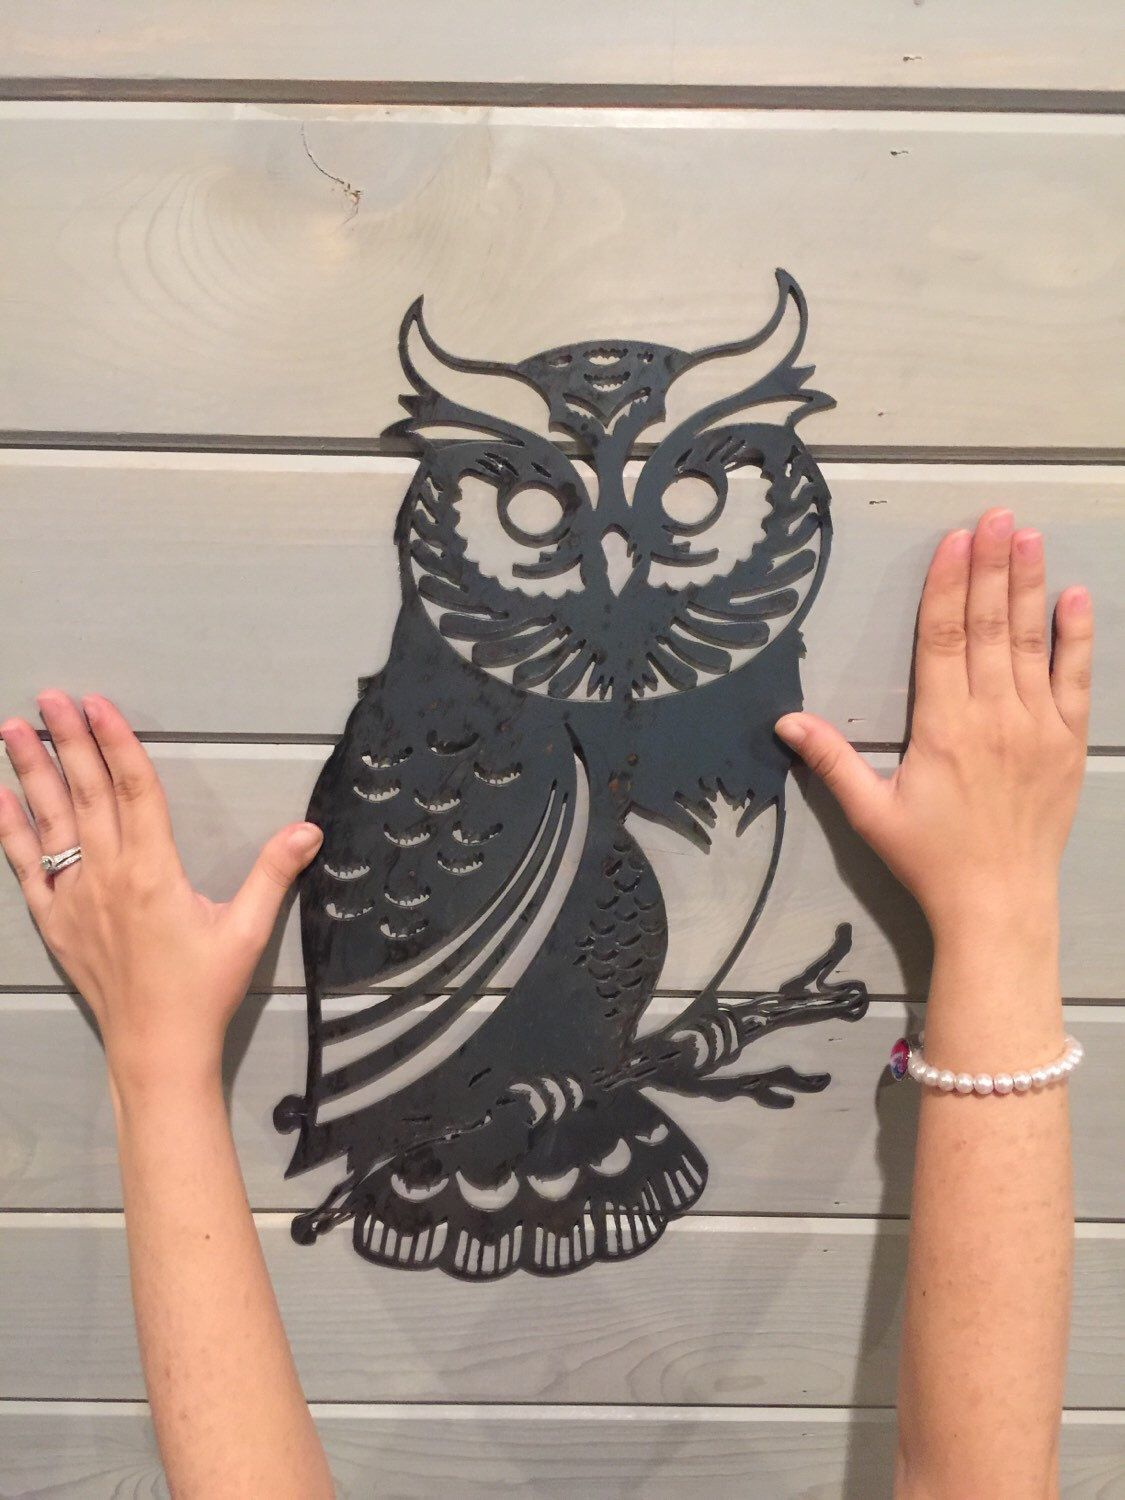 A personal favorite from my etsy shop httpsetsylisting owl metal art owl home decor owl wall art bird decor bird wall decor metal wall decor bird wall art rustic owl decor rustic decor amipublicfo Gallery